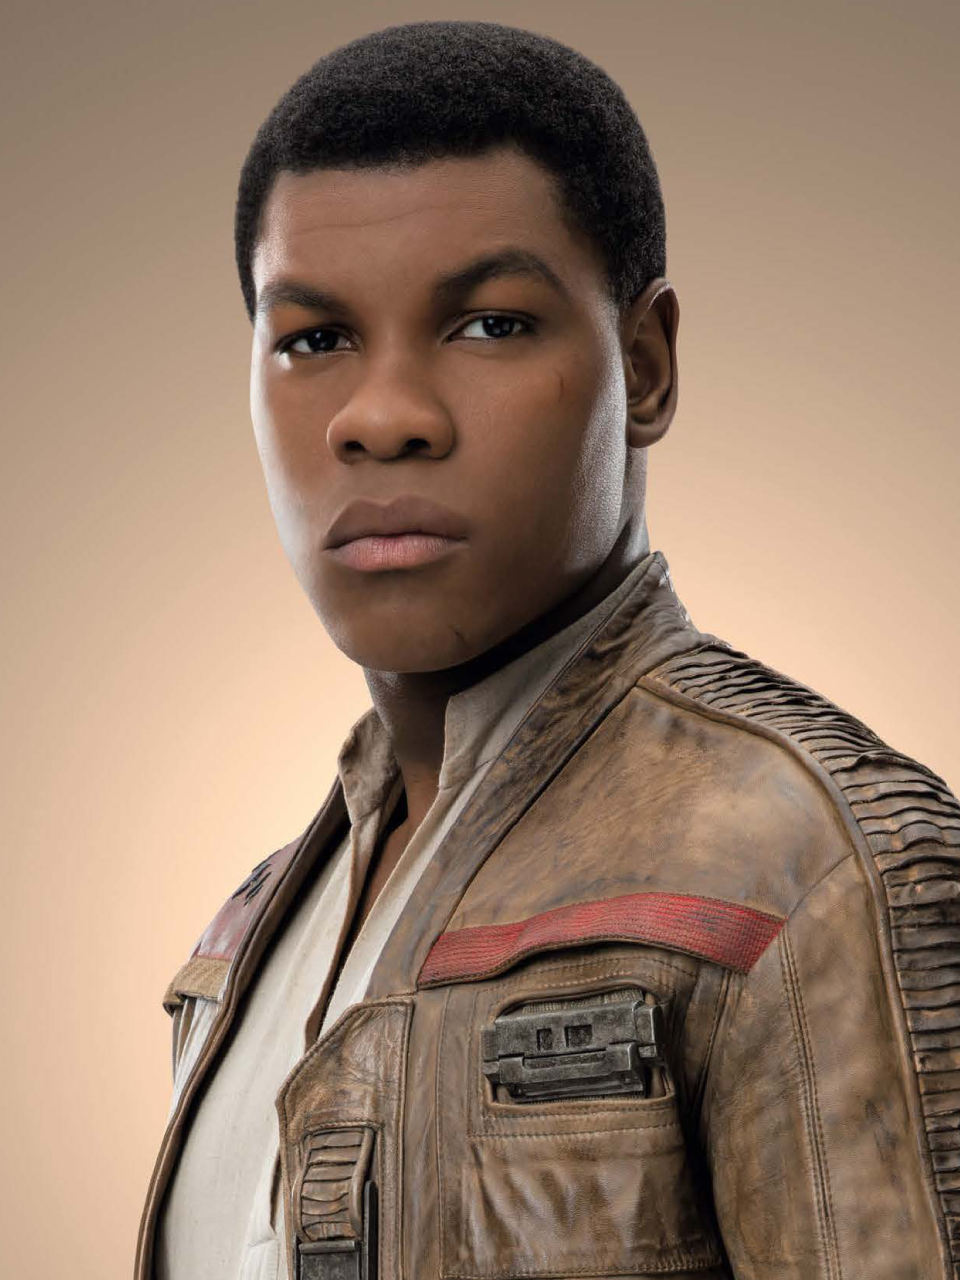 This is a copyrighted promotional image of Finn. It is believed that the copyright holder has granted permission for use under the fair use provision of United States copyright law. Source: Star Wars: The Last Jedi - The Official Collector's Edition via Wookieepedia